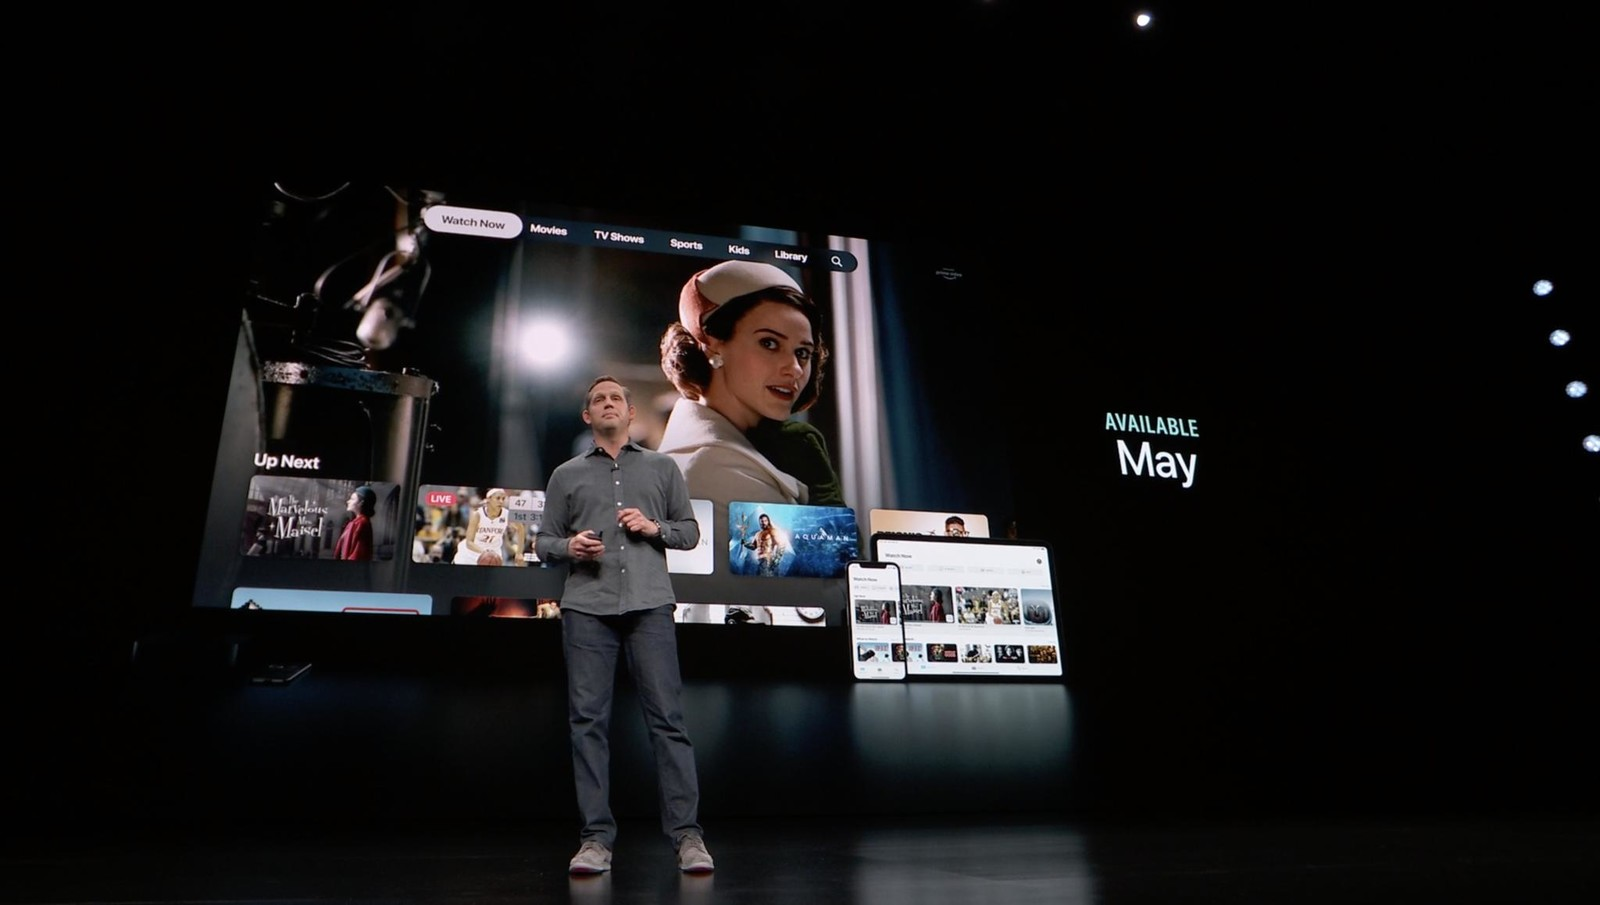 apple-march-event-apple-tv-may